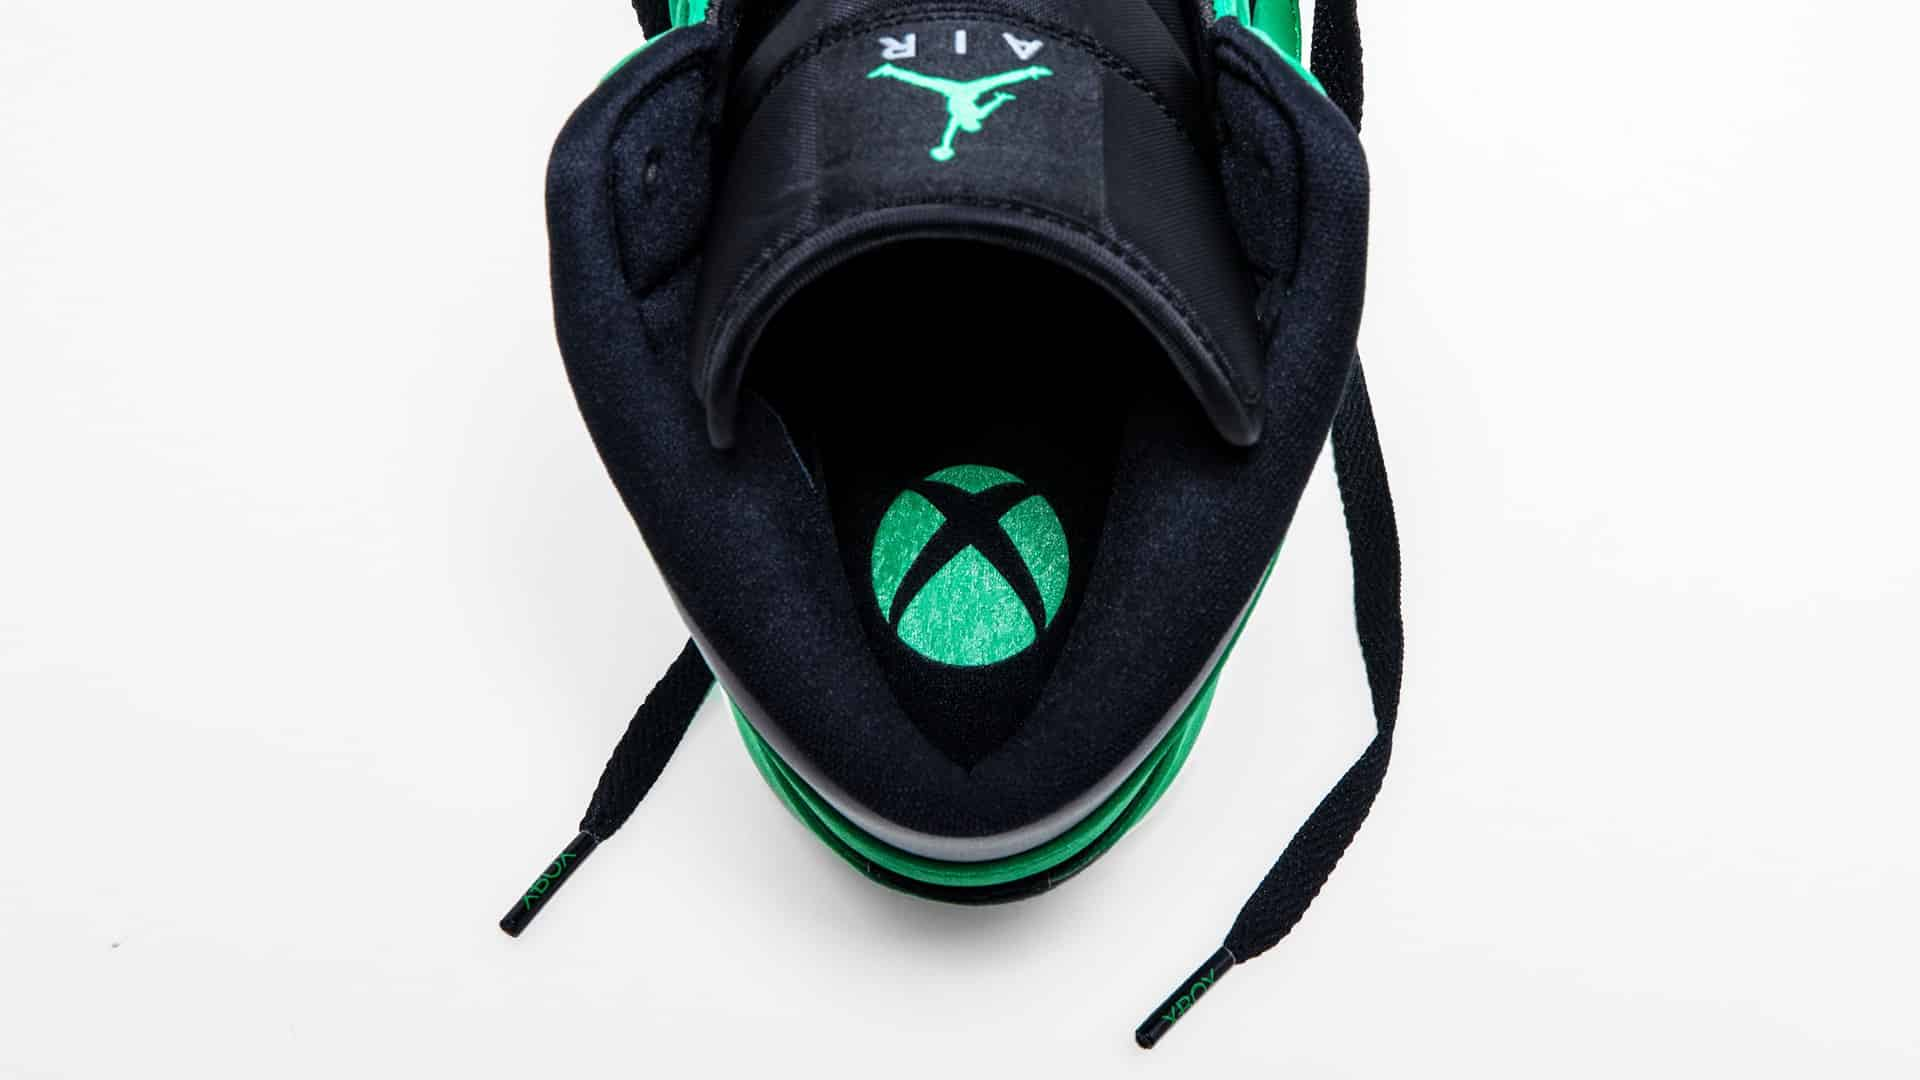 Jordan Xbox nouvelle collaboration All-star weekend2020